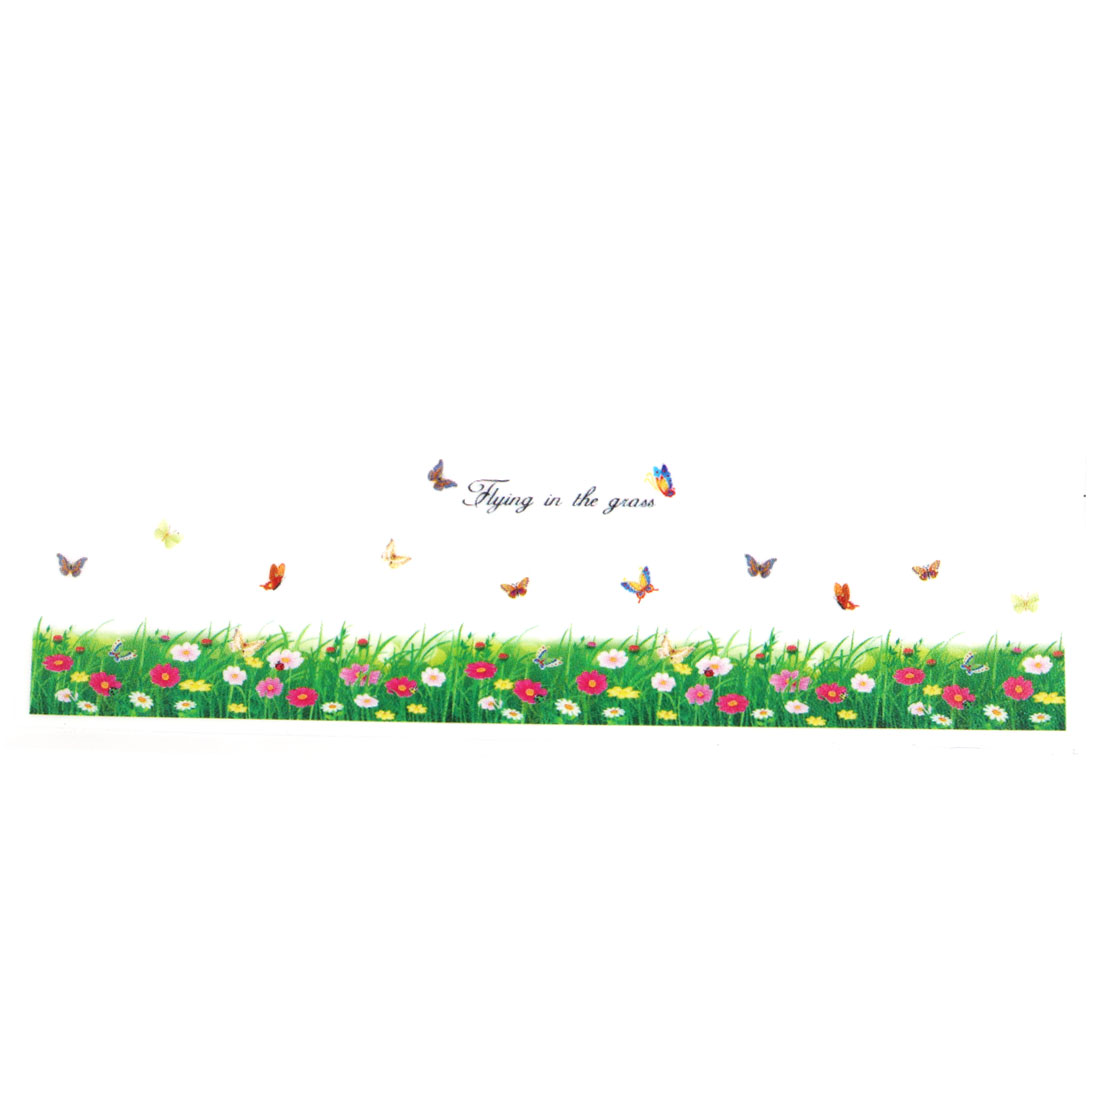 Butterfly Flying In The Grass Print Decal Mural Home Decor Peel Stick Wall Sticker